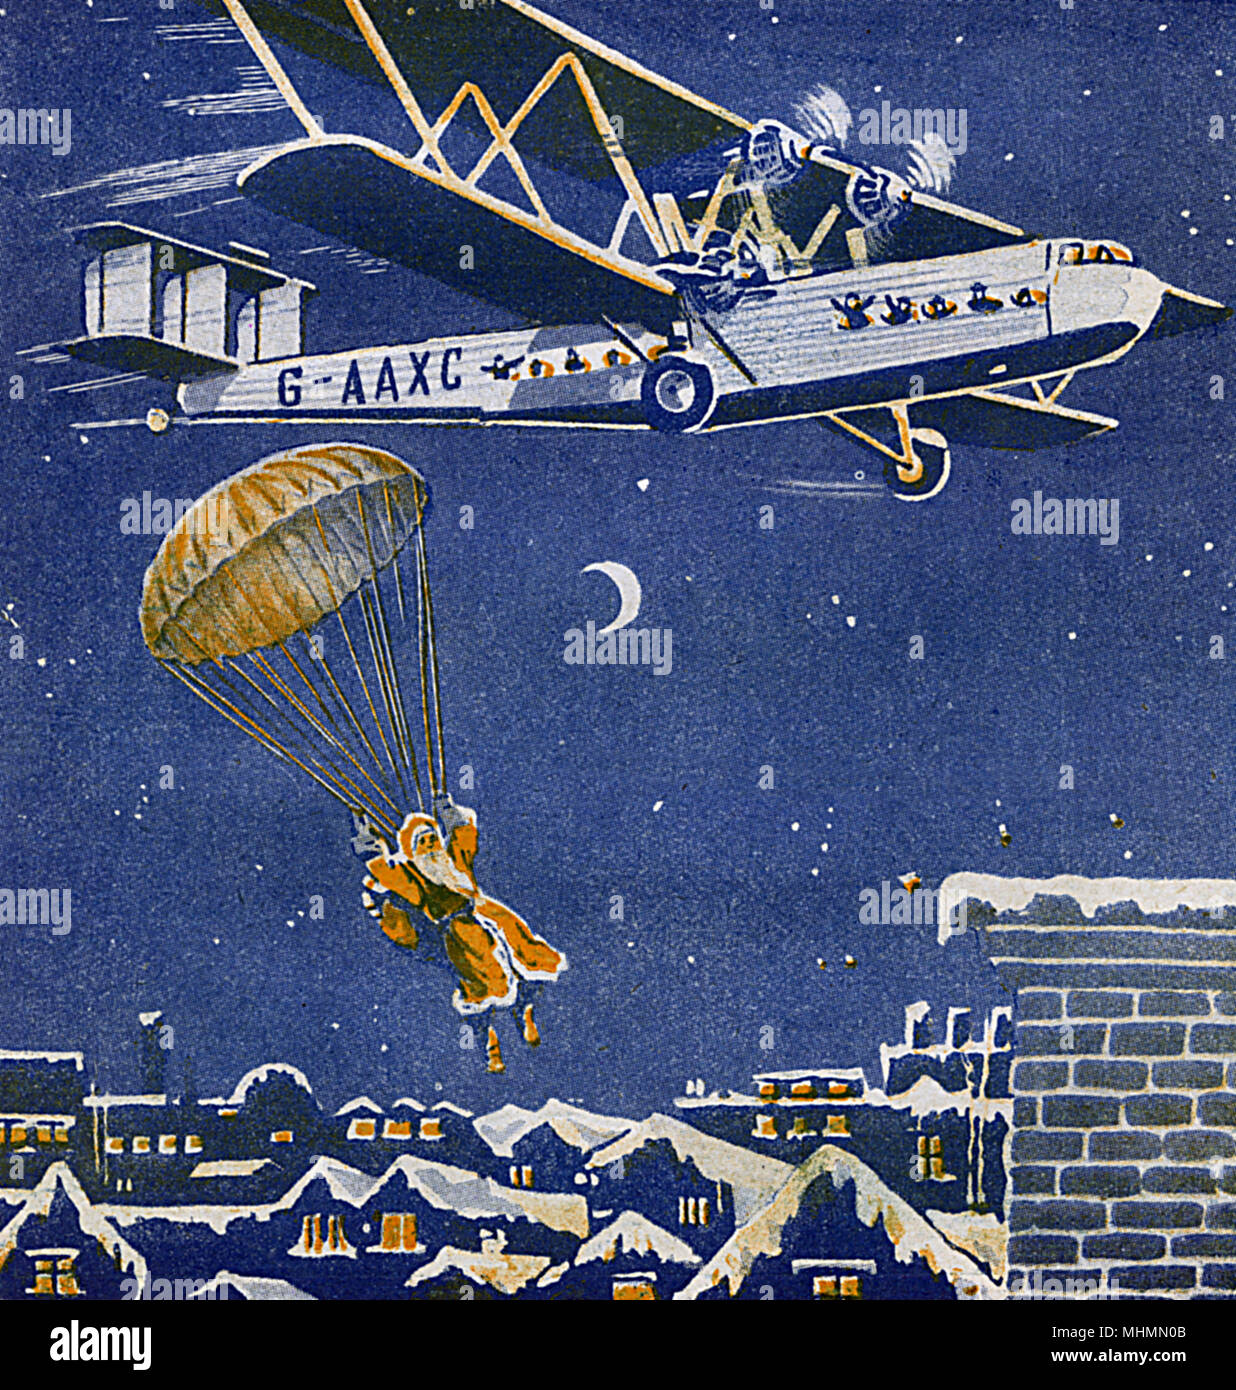 Father Christmas jumps out of an aeroplane using a parachute onto snowy rooftops. Who needs reindeer to deliver presents in the modern age?     Date: 1932 - Stock Image